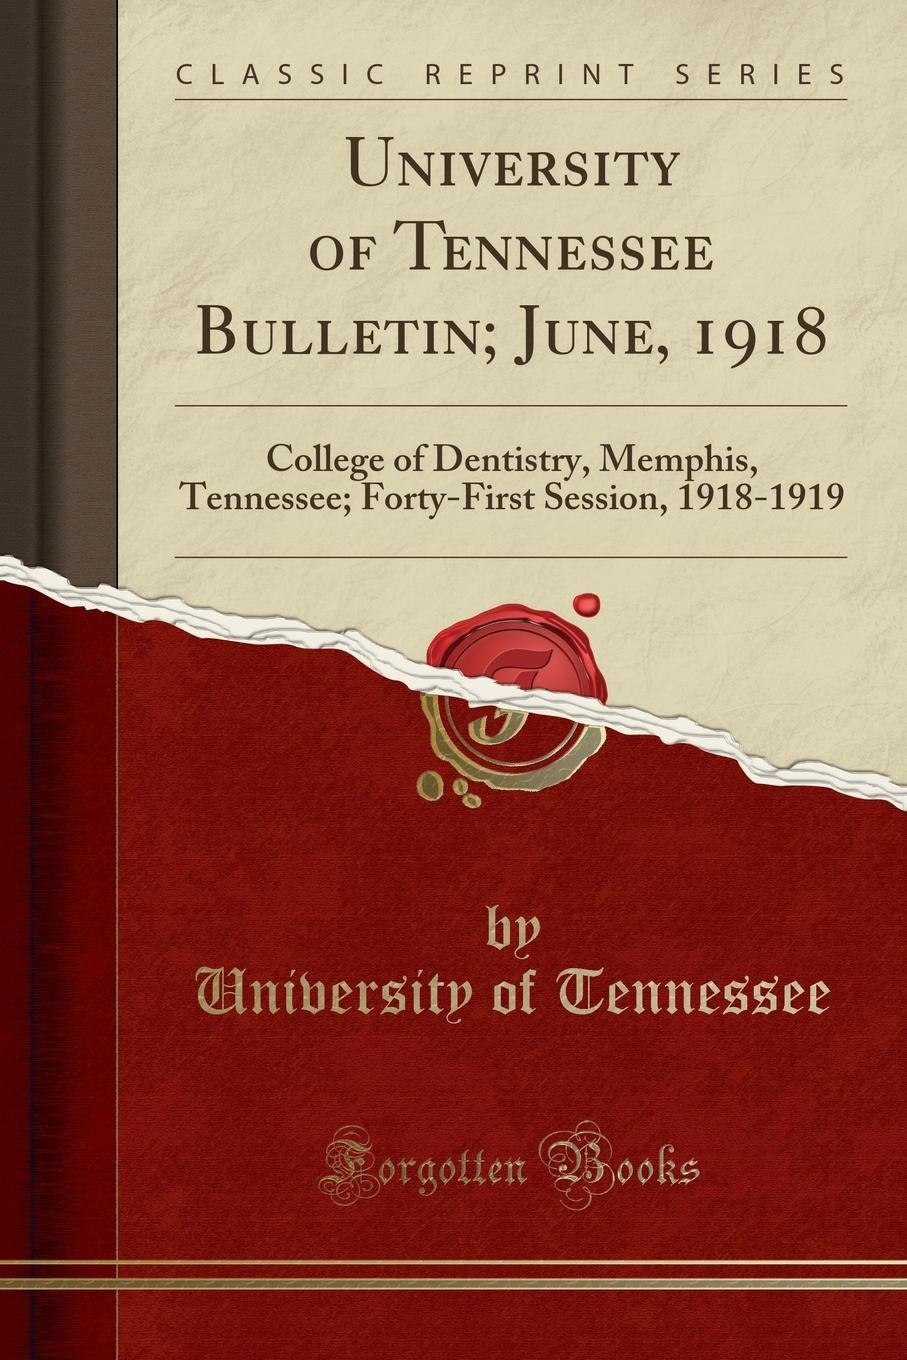 University of Tennessee Bulletin; June, 1918: College of Dentistry, Memphis, Tennessee; Forty-First Session, 1918-1919 (Classic Reprint) ebook